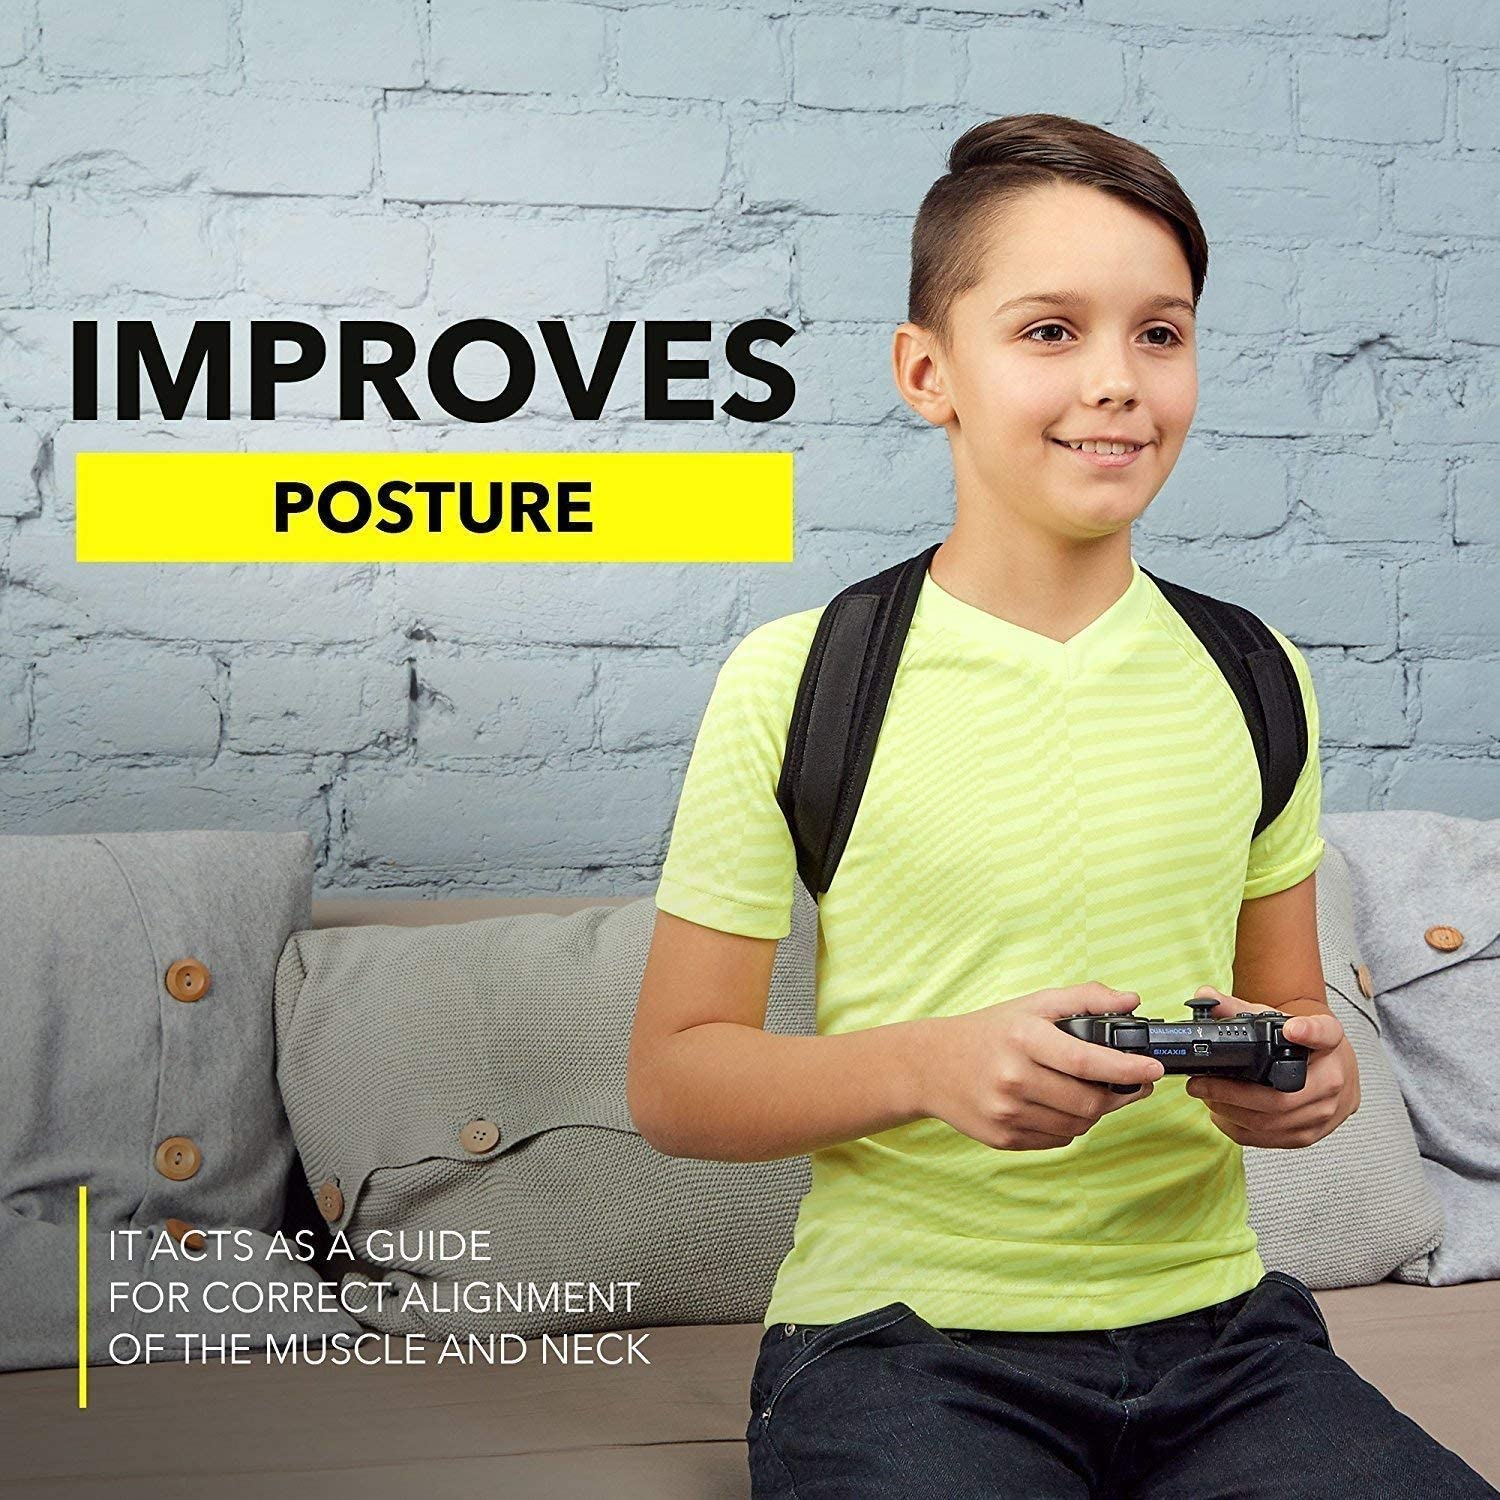 6. PANADY : Best Posture Corrector Back Brace for Teens, Men & Women